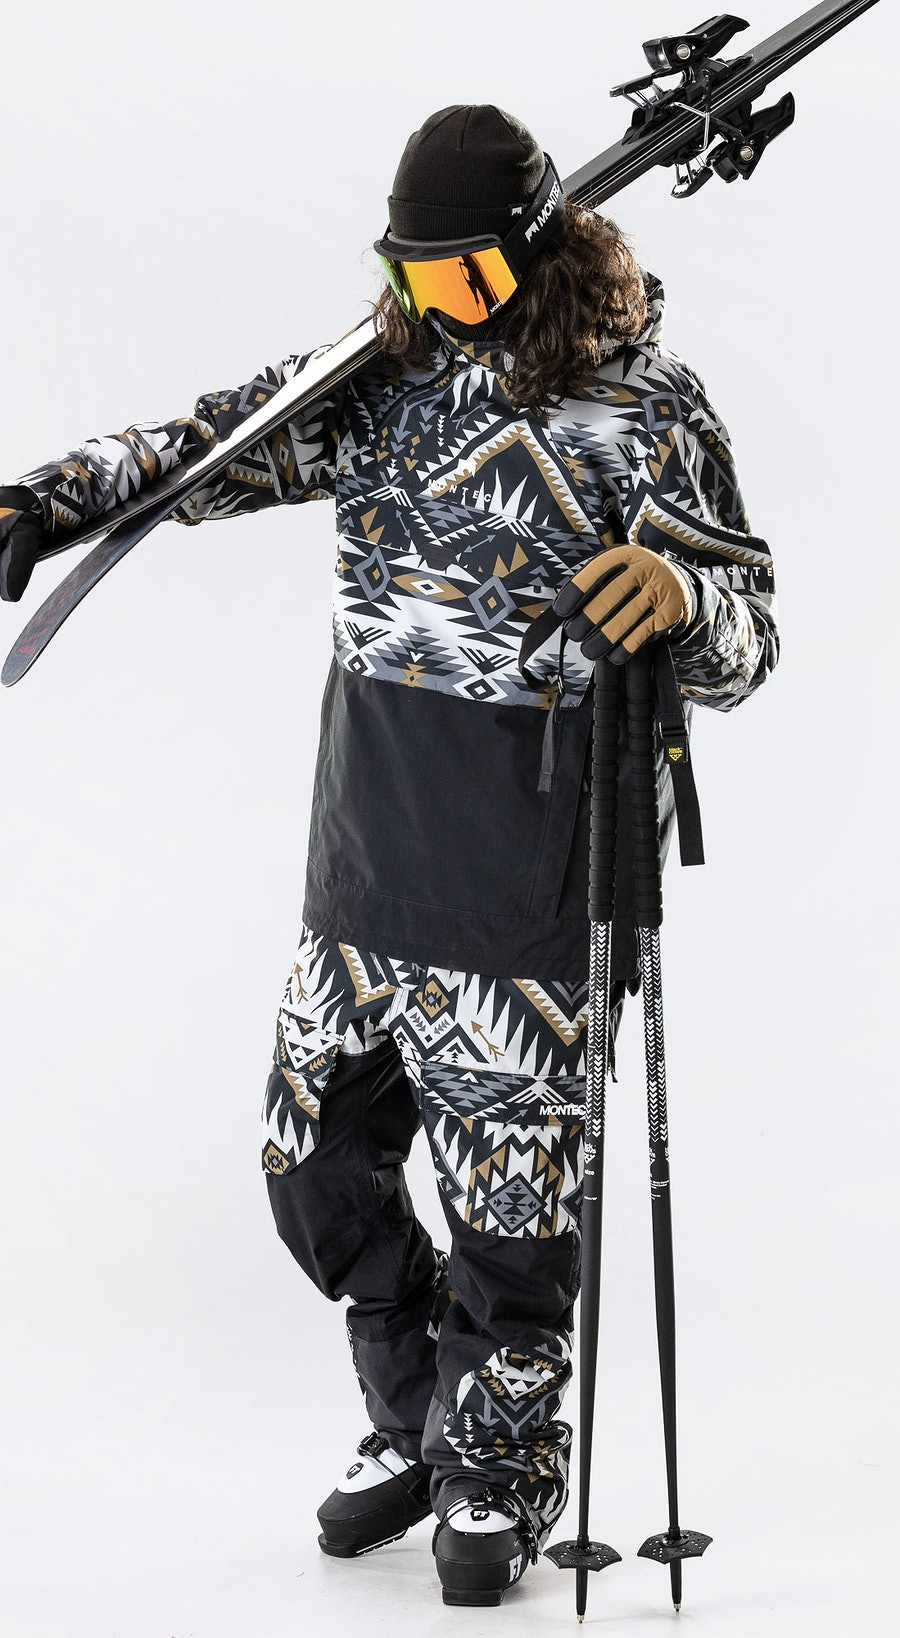 Montec Dune Komber Gold/Black Ski Clothing Multi